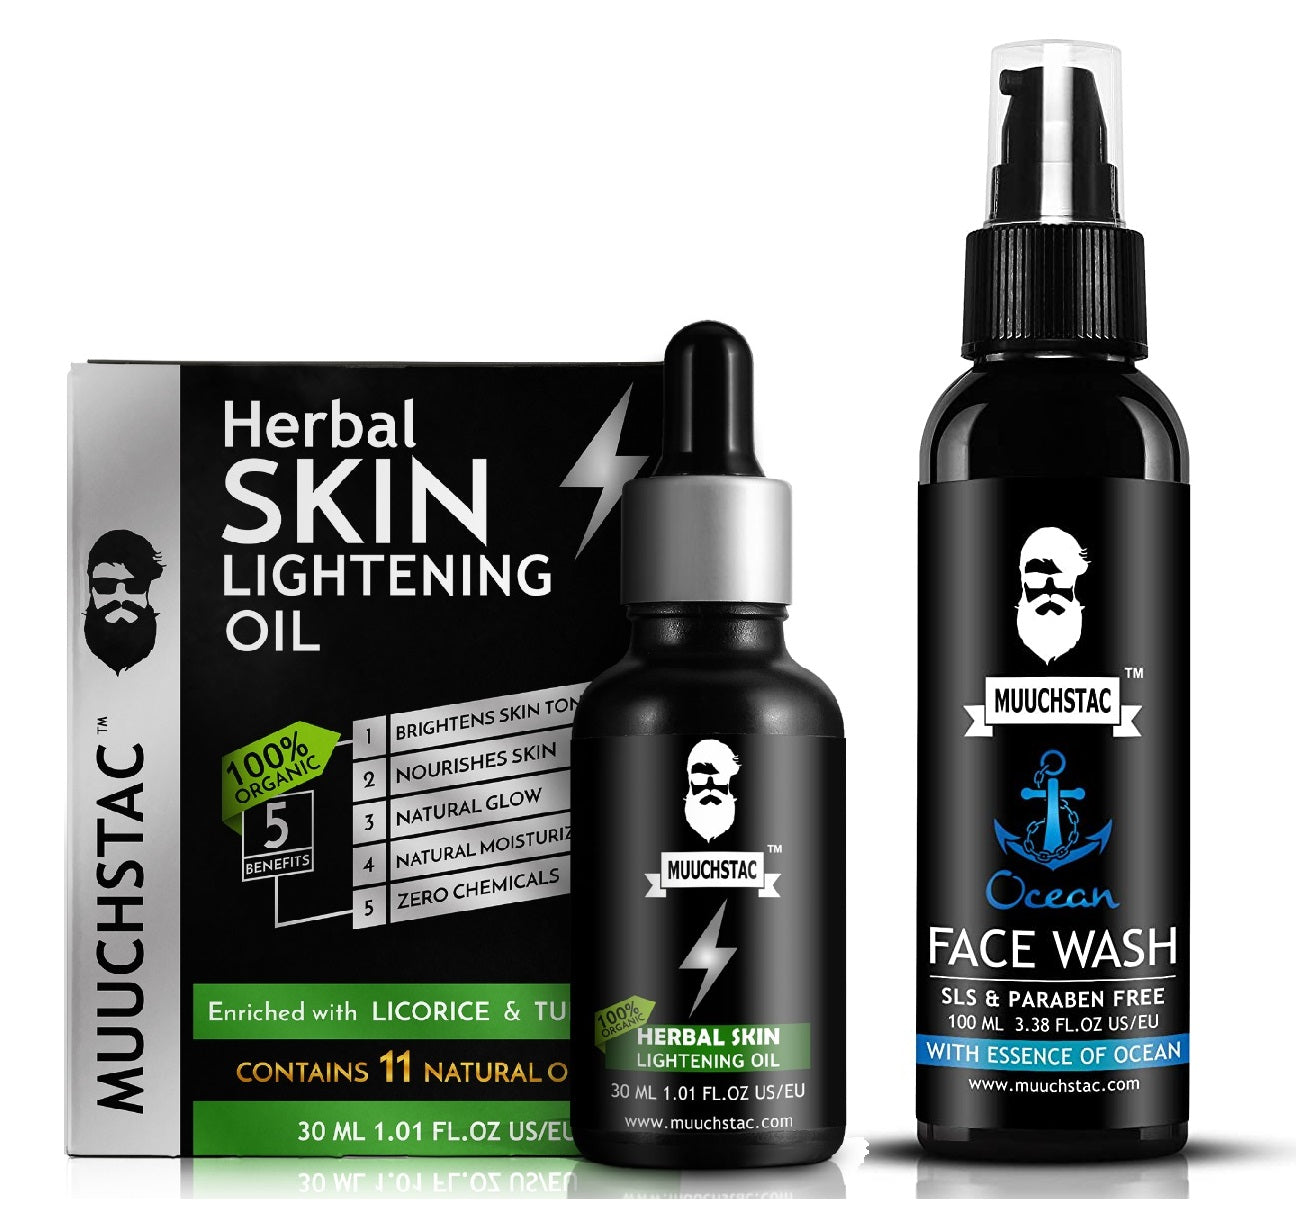 Muuchstac Herbal Skin Lightening Oil and Ocean Face Wash - Skin Lightening Kit (130ml) - Pack of 2